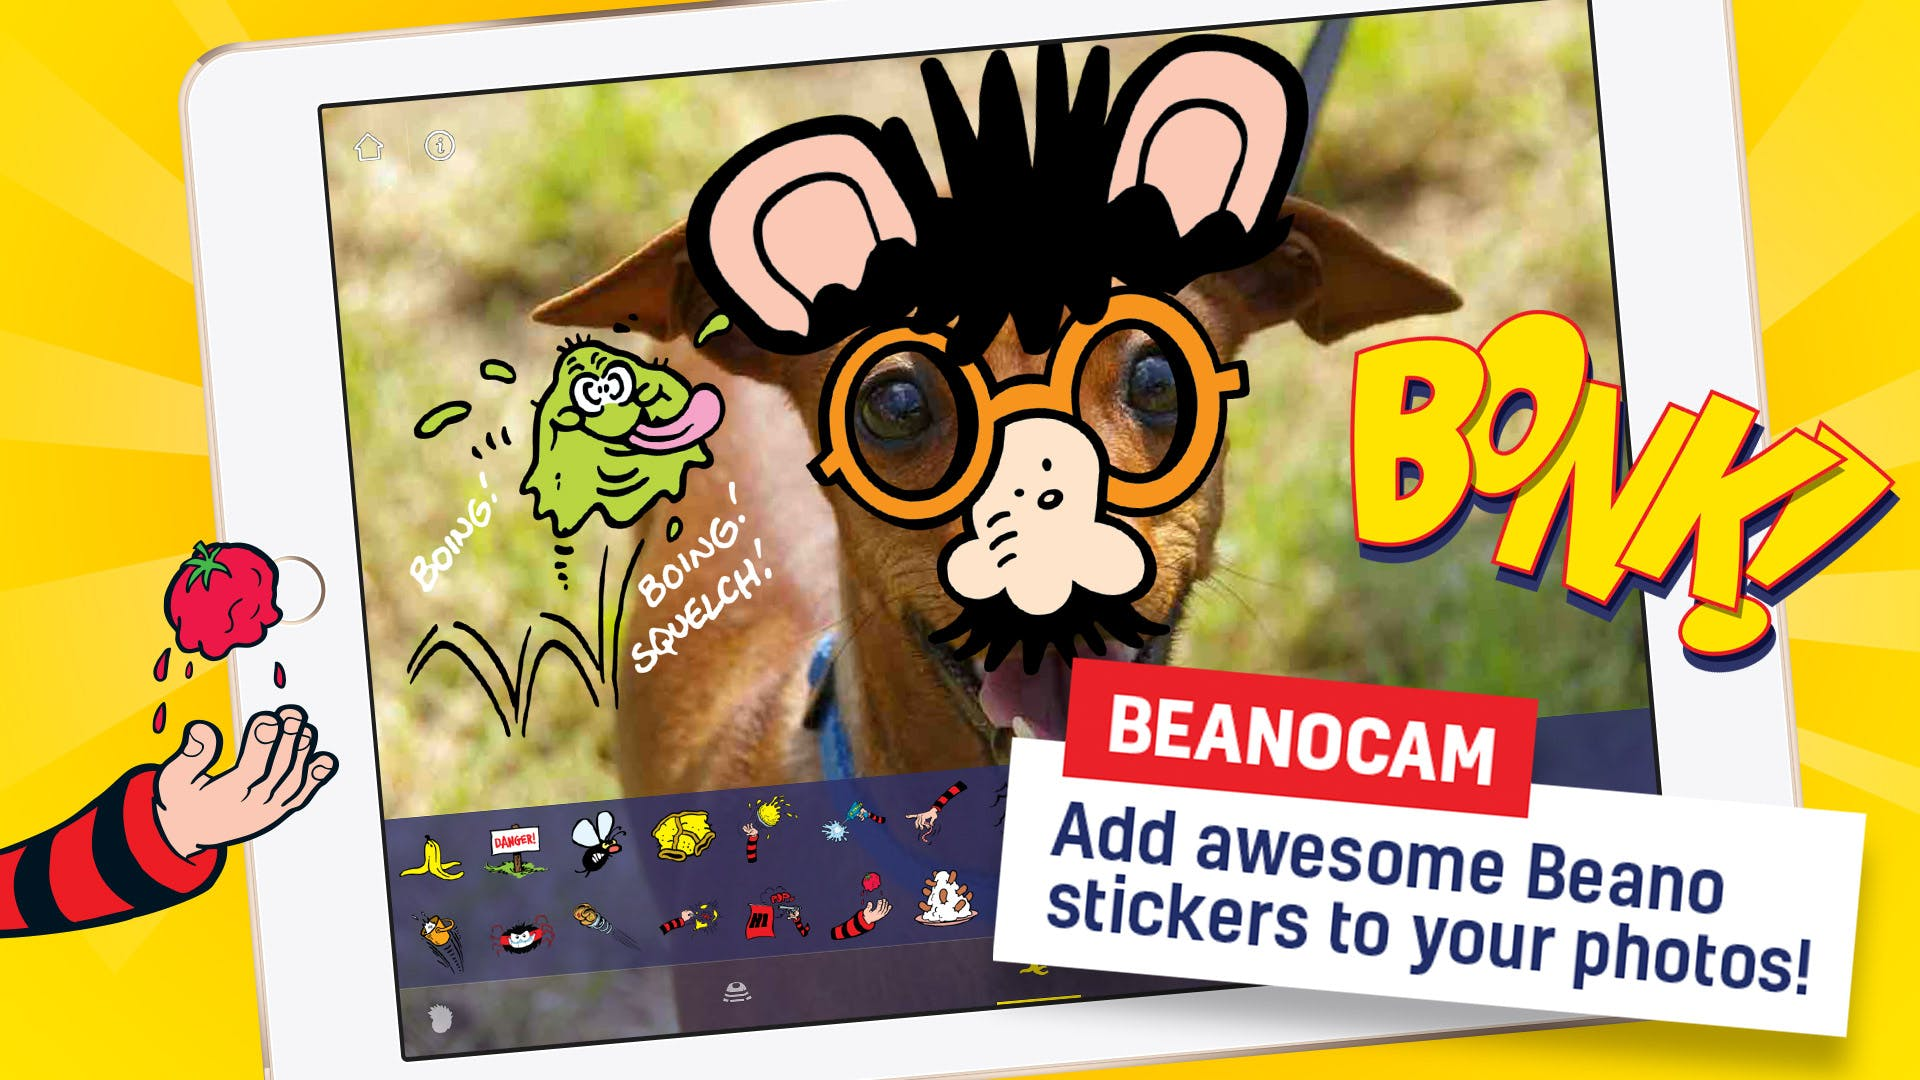 Download the Beano app!